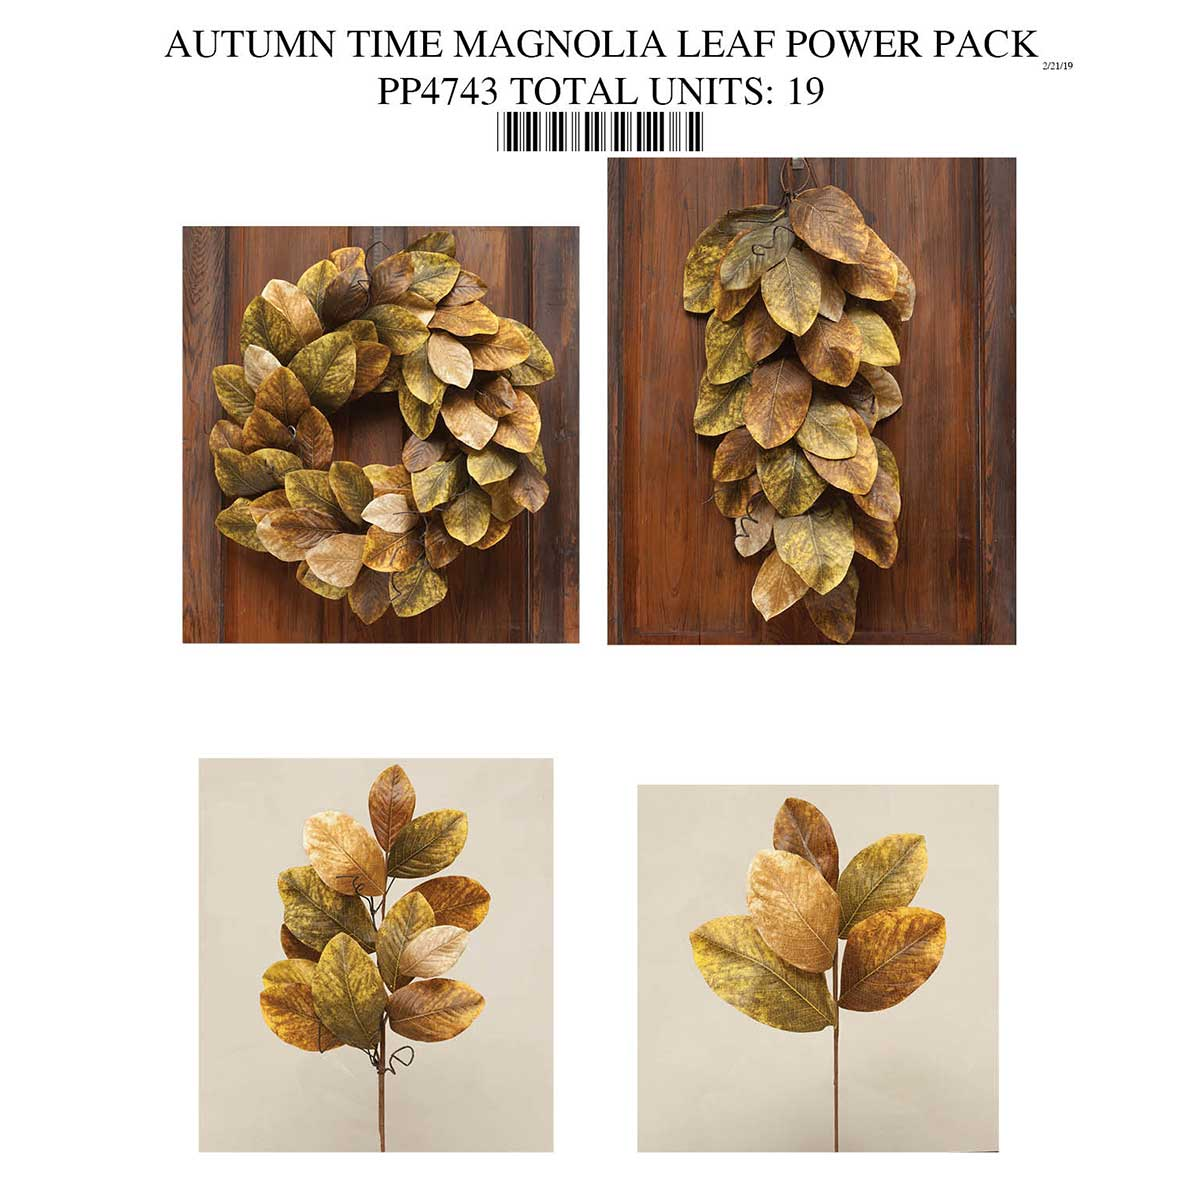 MAGNOLIA LEAF COLLECTION POWER PACK PP4743